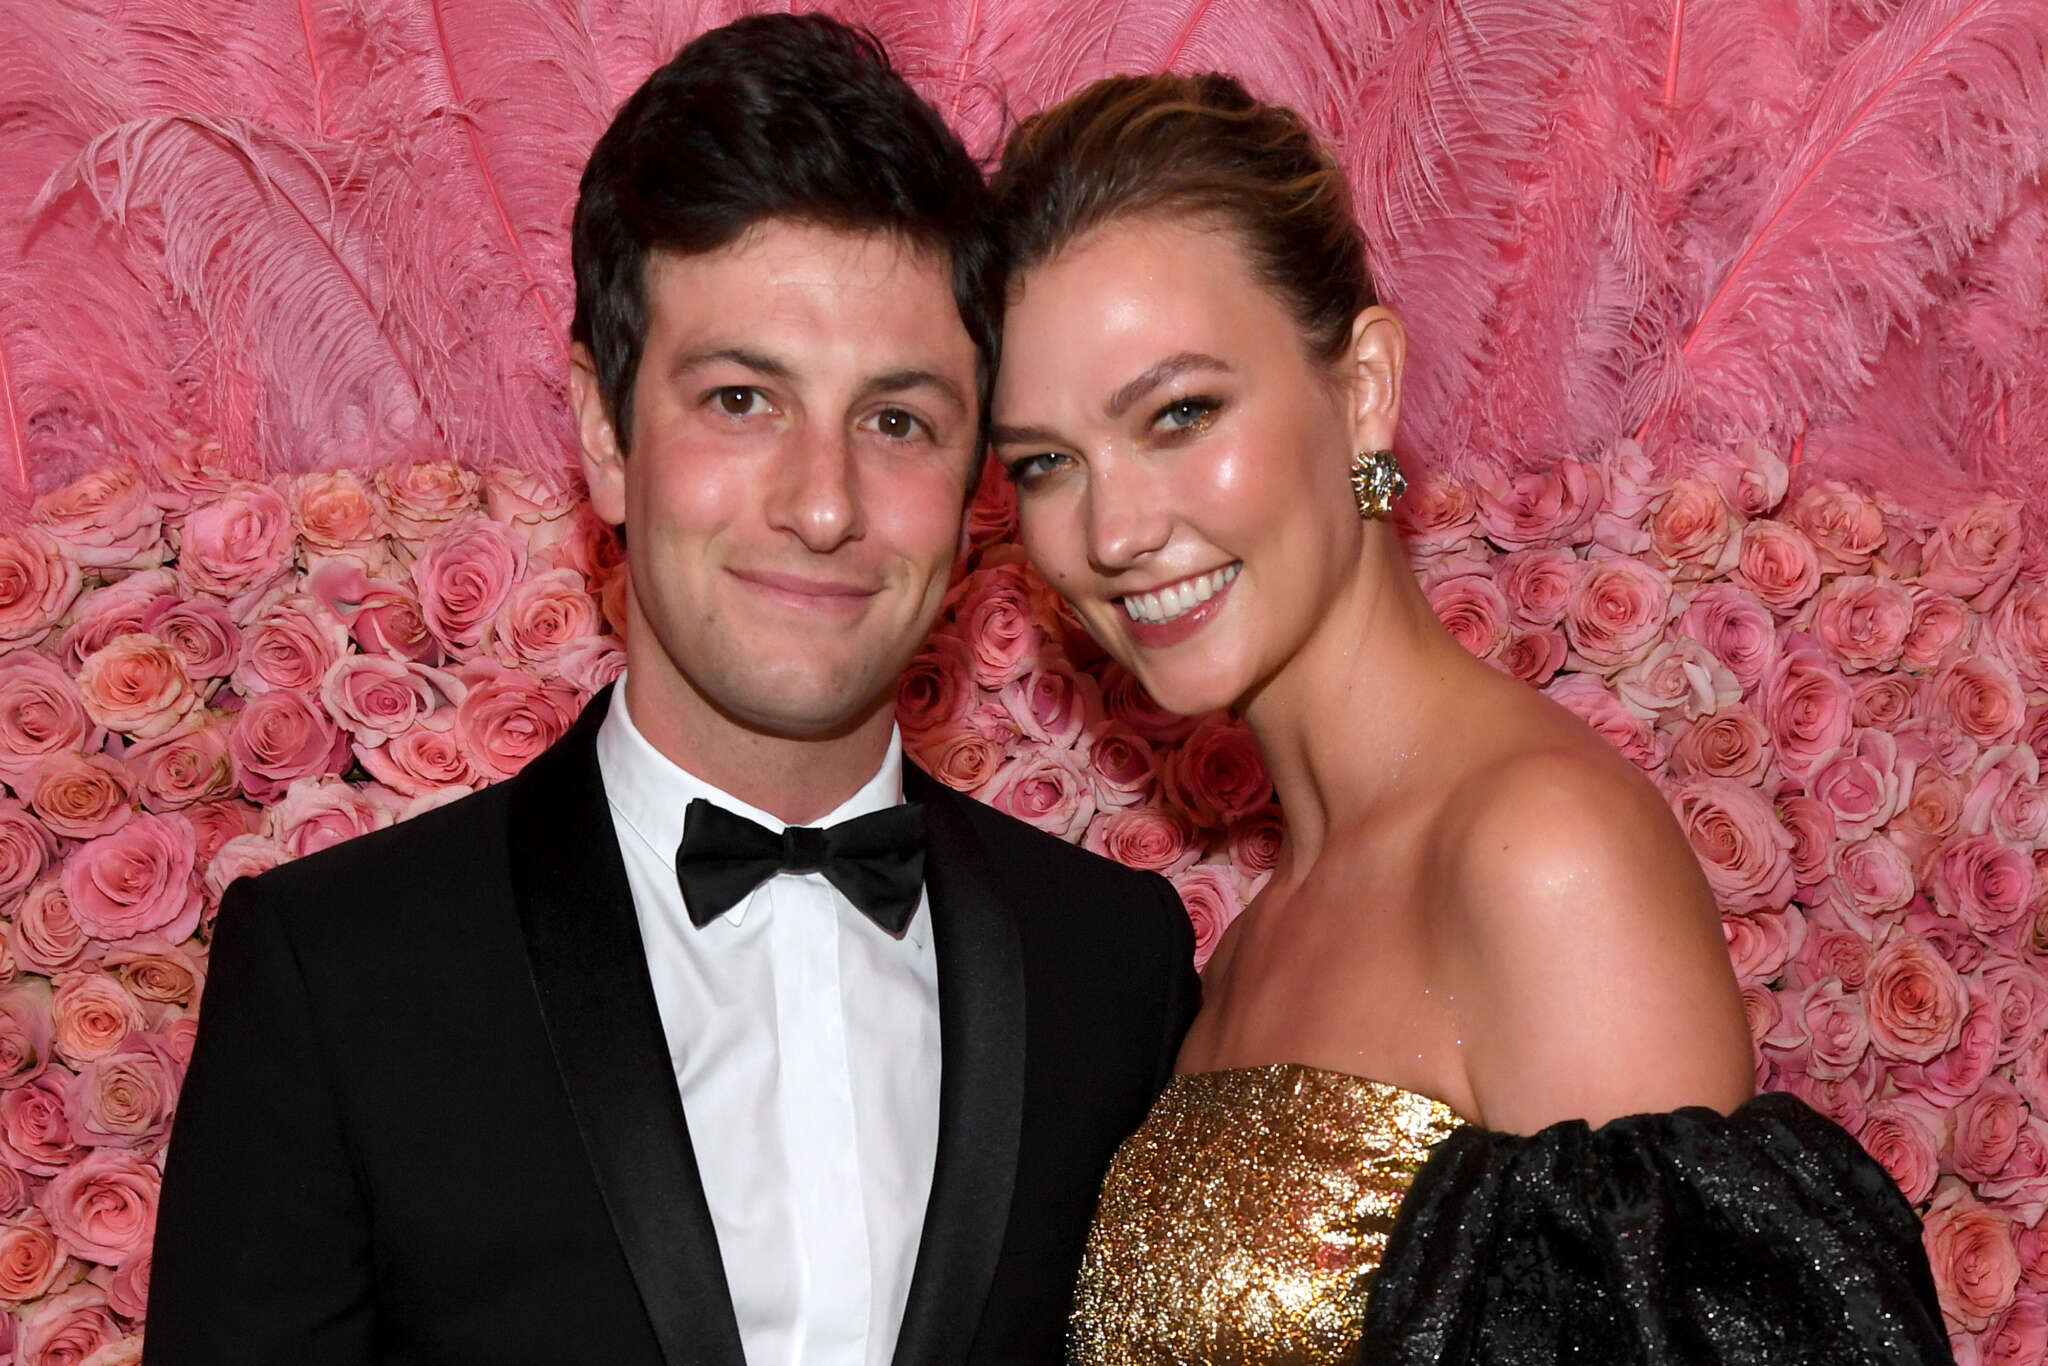 Karlie Kloss And Joshua Kushner Welcome Their First Baby – See The First Pic!